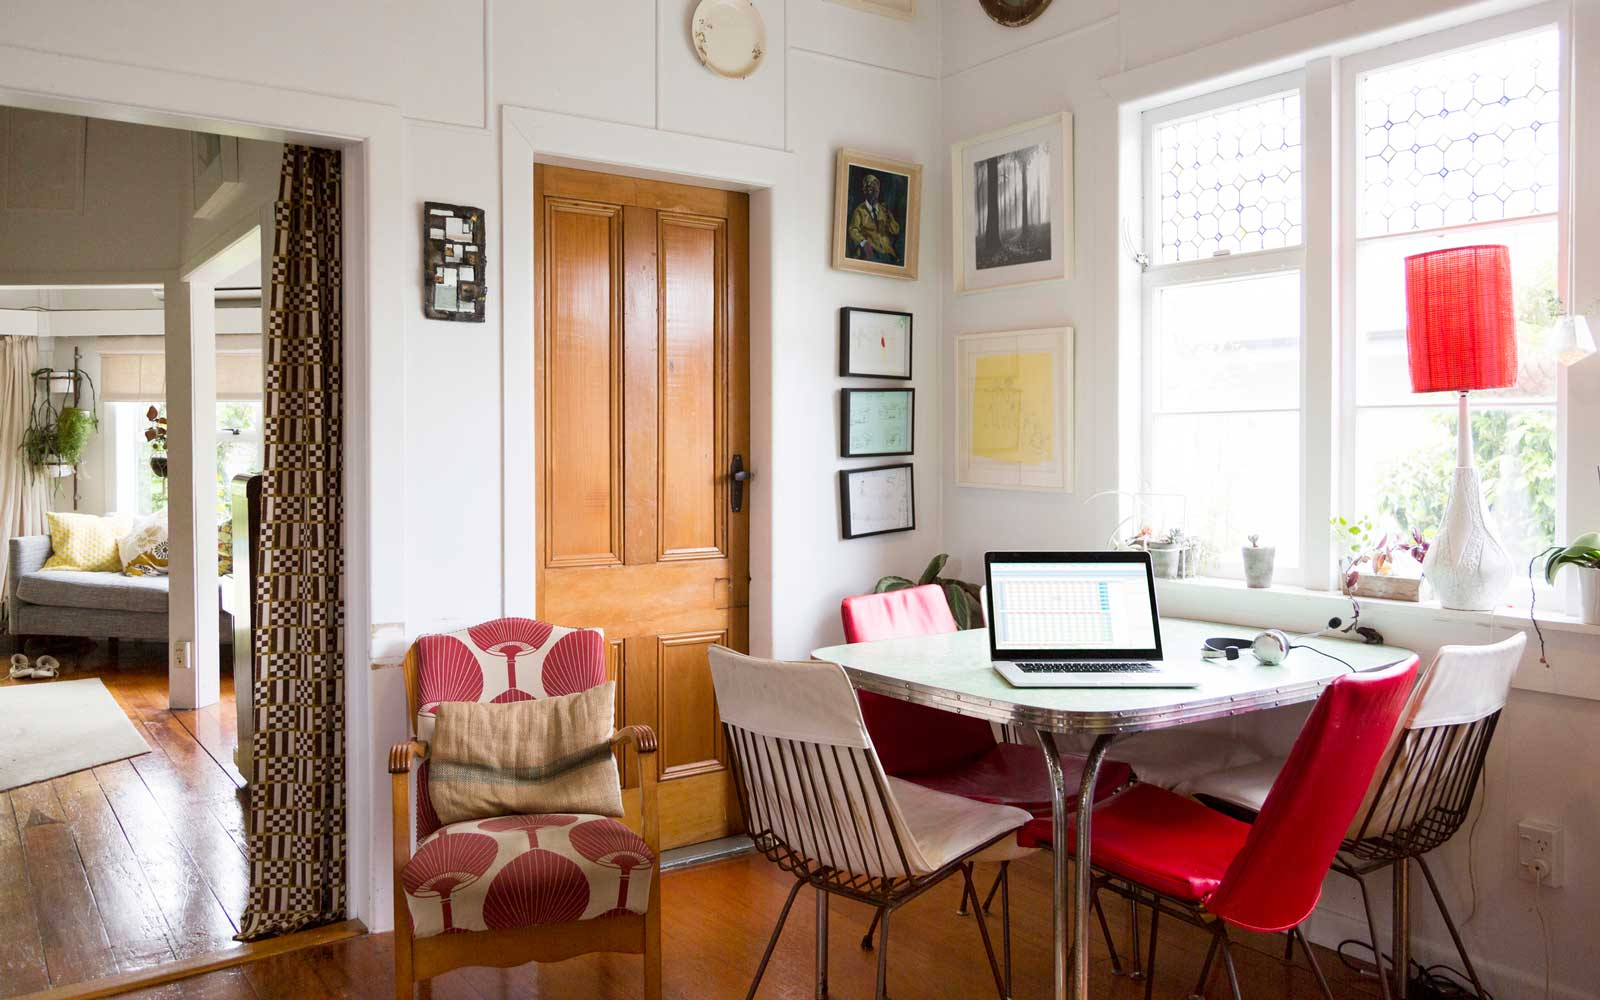 Life-Work Balance When Working from Home